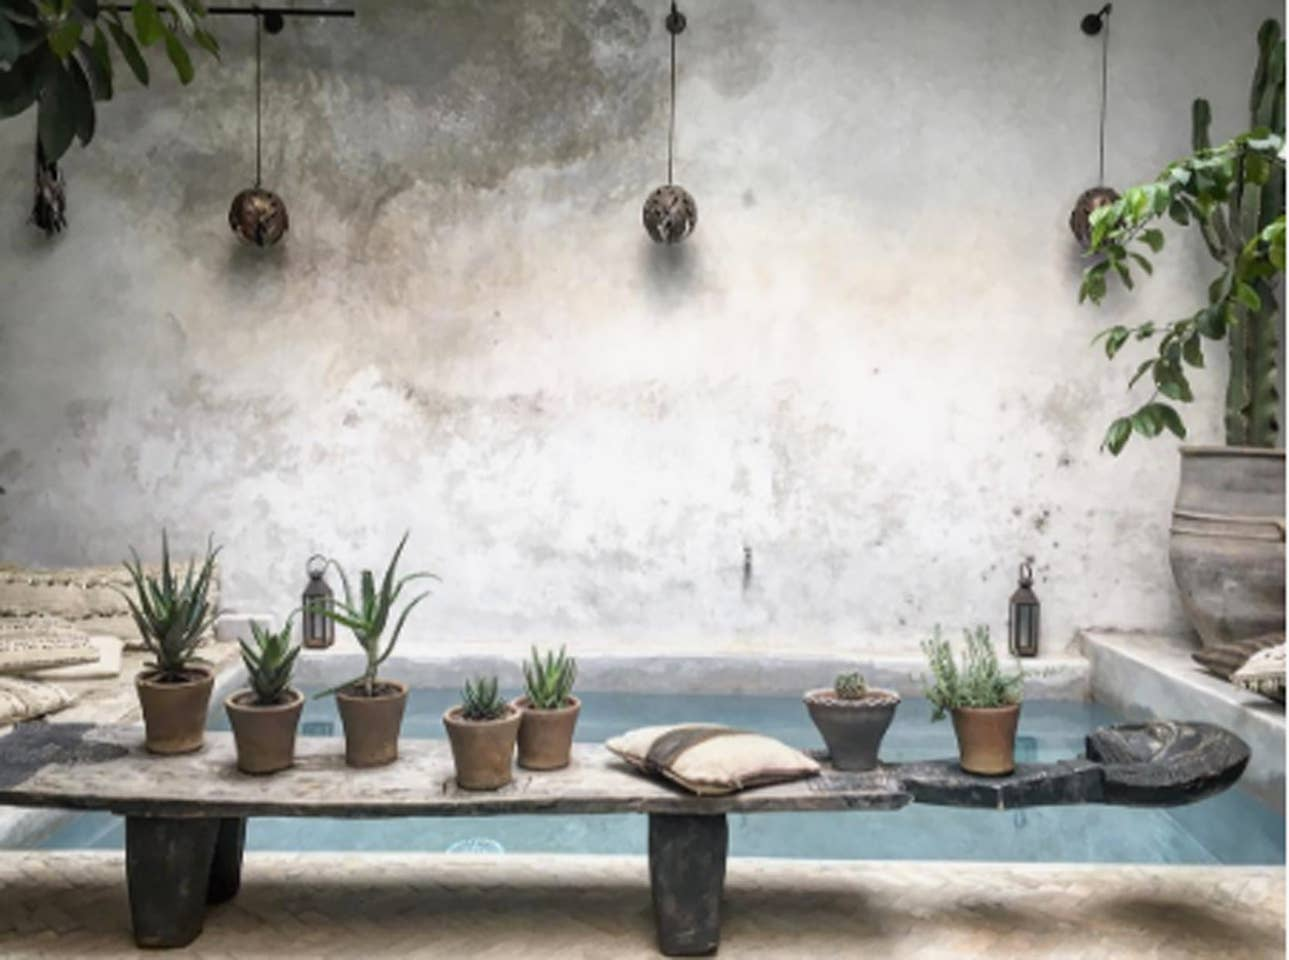 Morocco Airbnb Riad Experience